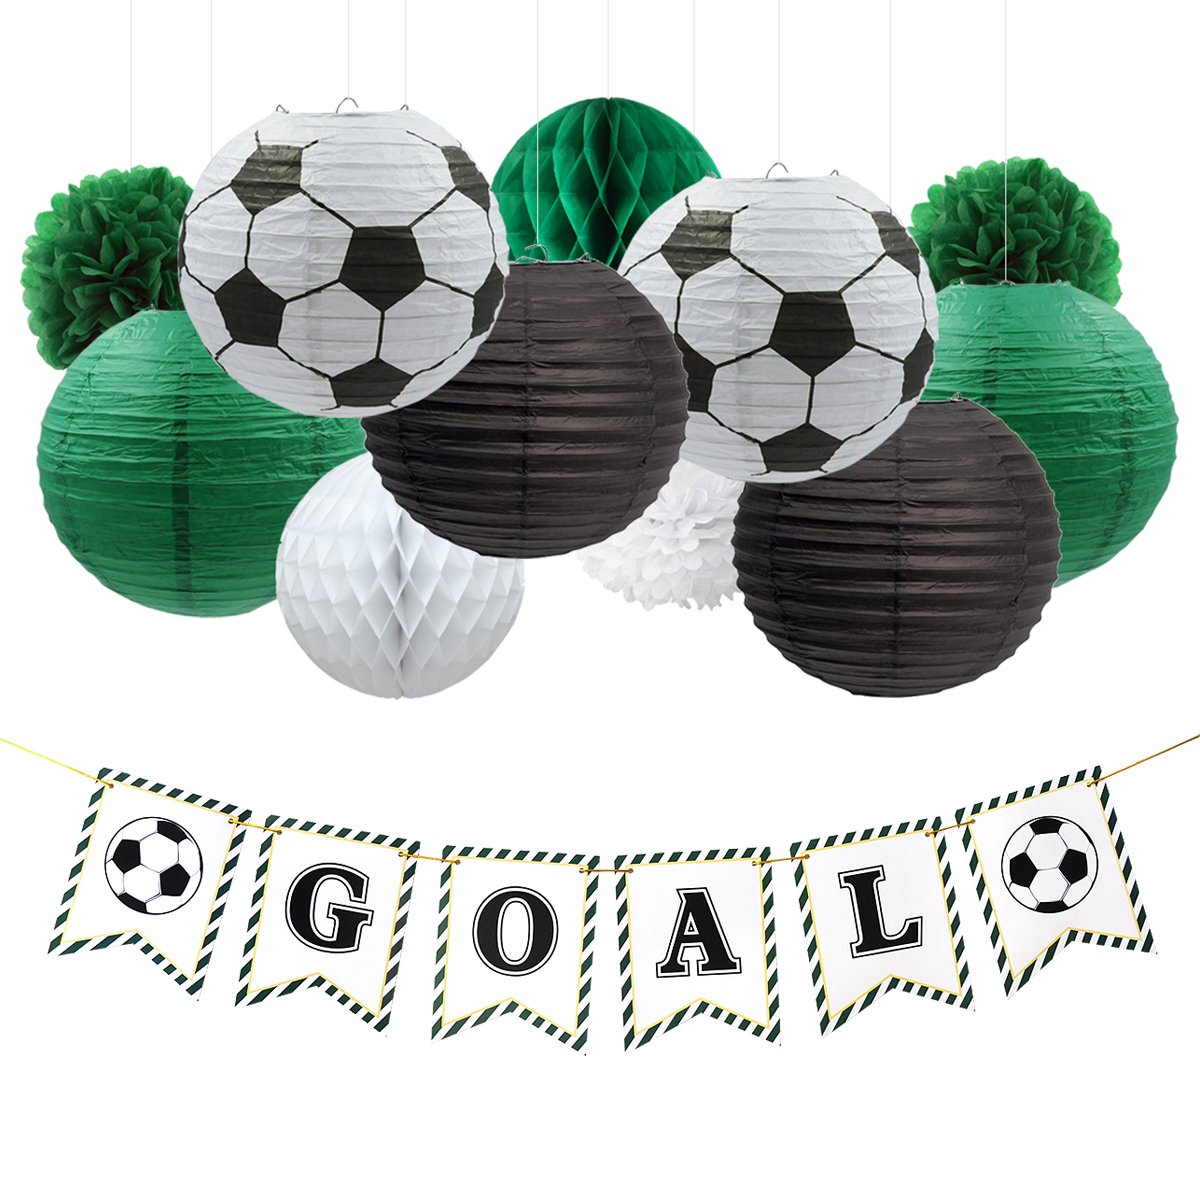 NICROLANDEE Soccer Party Decorations Package Goal Party Banner Hanging Paper Lantern Tissue Flowers Pom Poms Honeycomb Ball for World Cup Soccer Sports Themed Birthday Party Decor Kit by NICROLANDEE